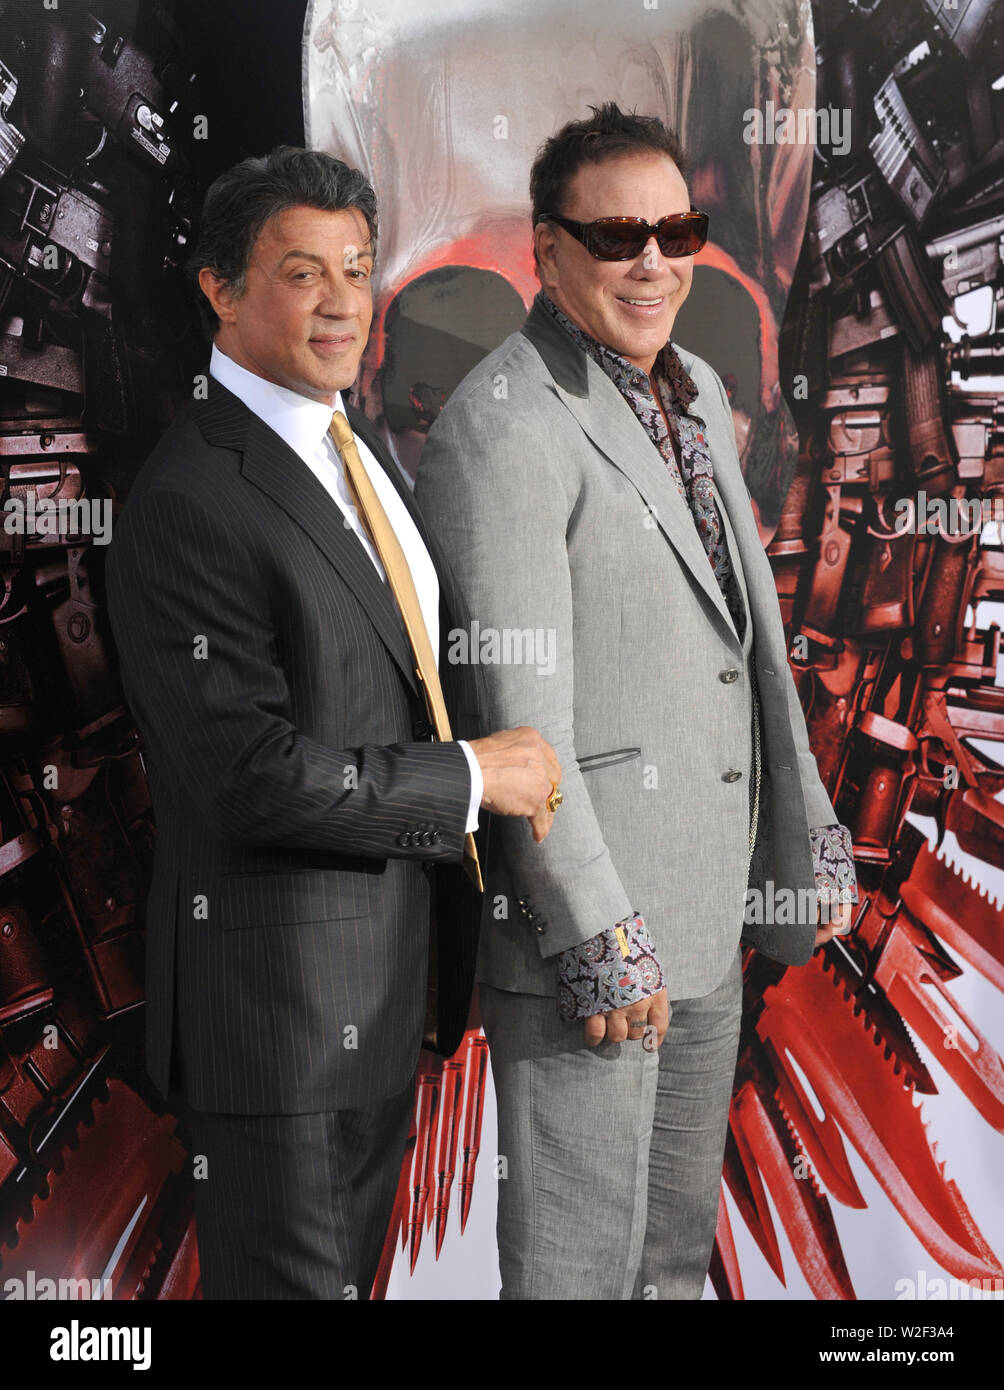 LOS ANGELES, CA. August 03, 2010: Sylvester Stallone (left) & Mickey Rourke at the world premiere of their new movie 'The Expendables' at Grauman's Chinese Theatre, Hollywood. © 2010 Paul Smith / Featureflash - Stock Image